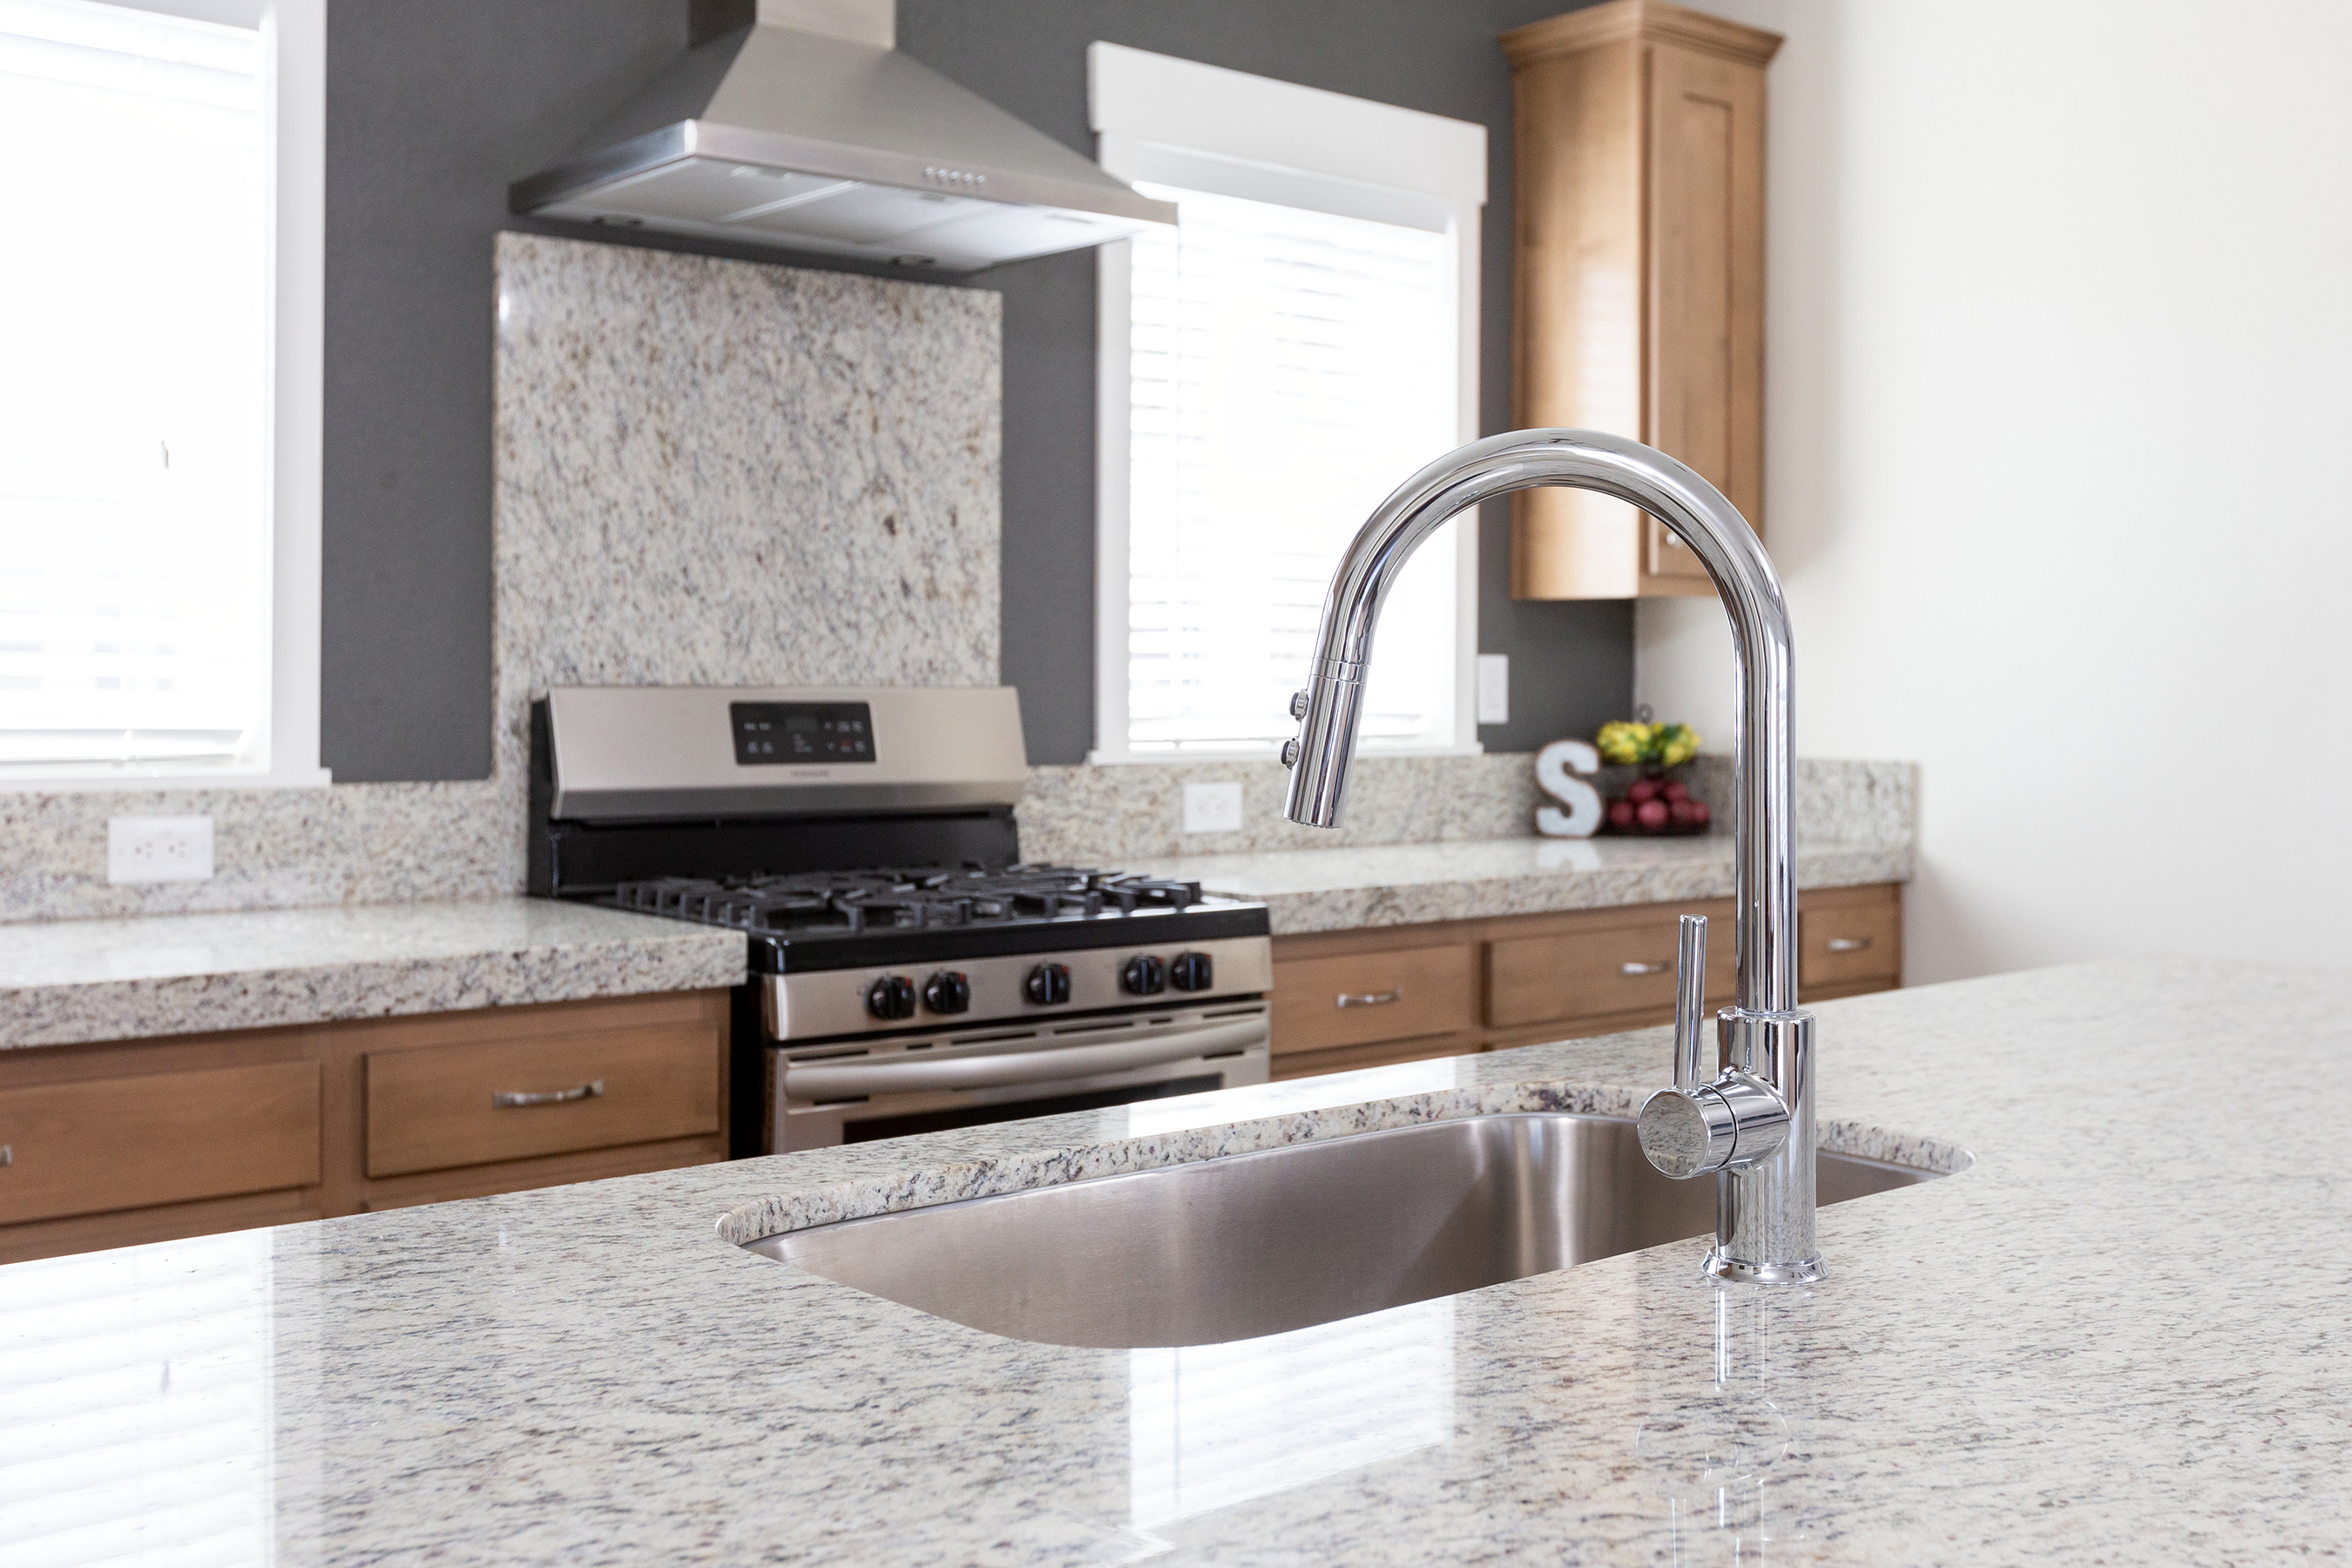 Pfister Faucets will be featured in Clayton Built® kitchens and bathrooms.